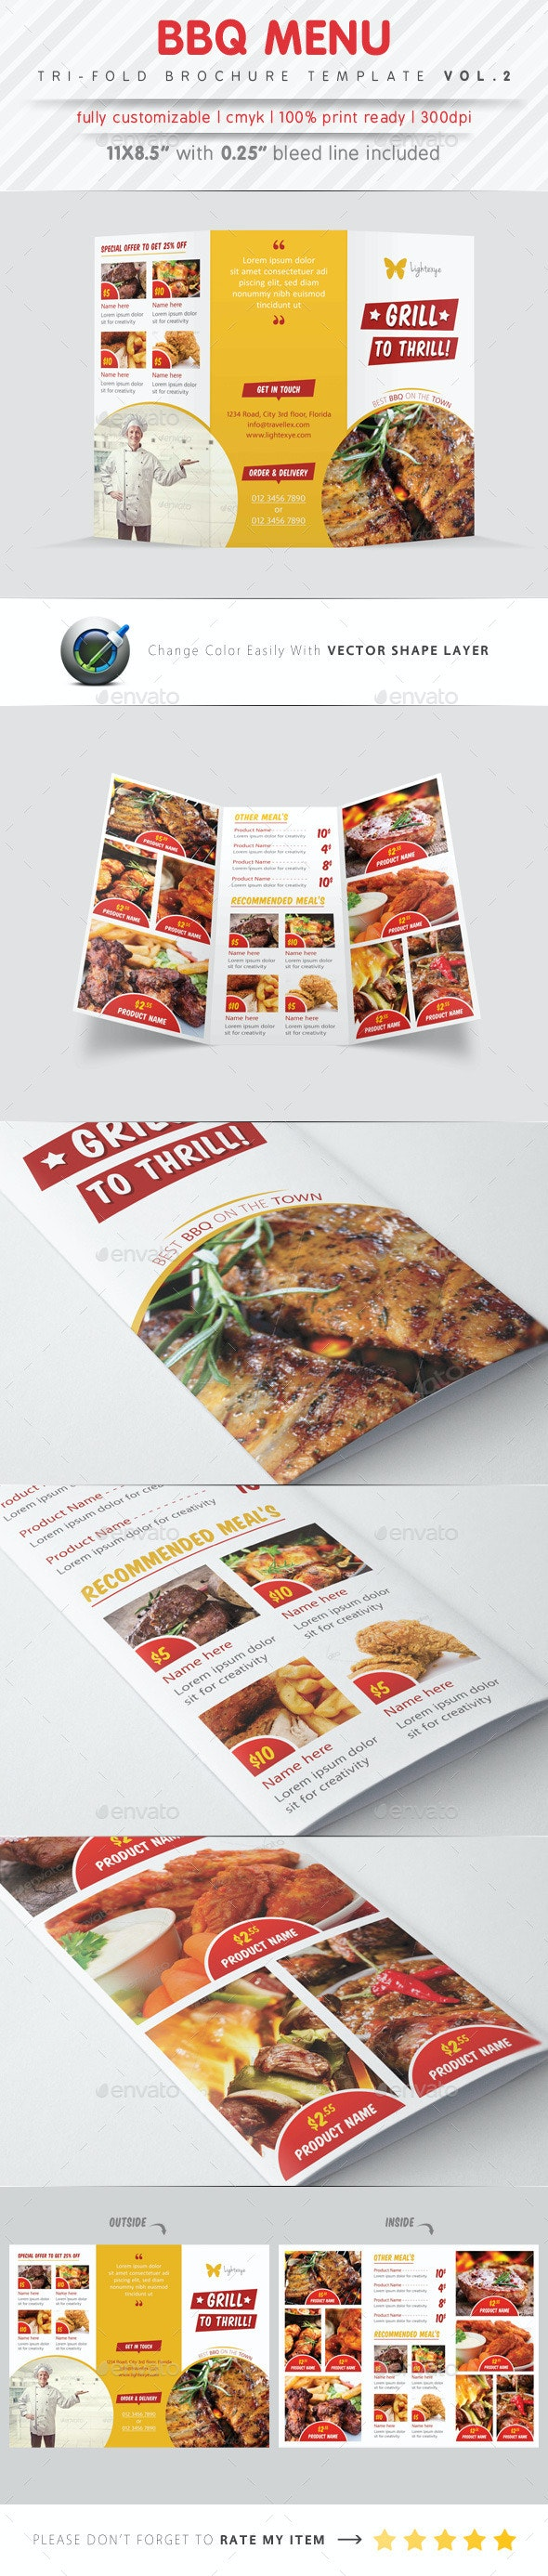 BBQ Menu Tri Fold Template - Food Menus Print Templates